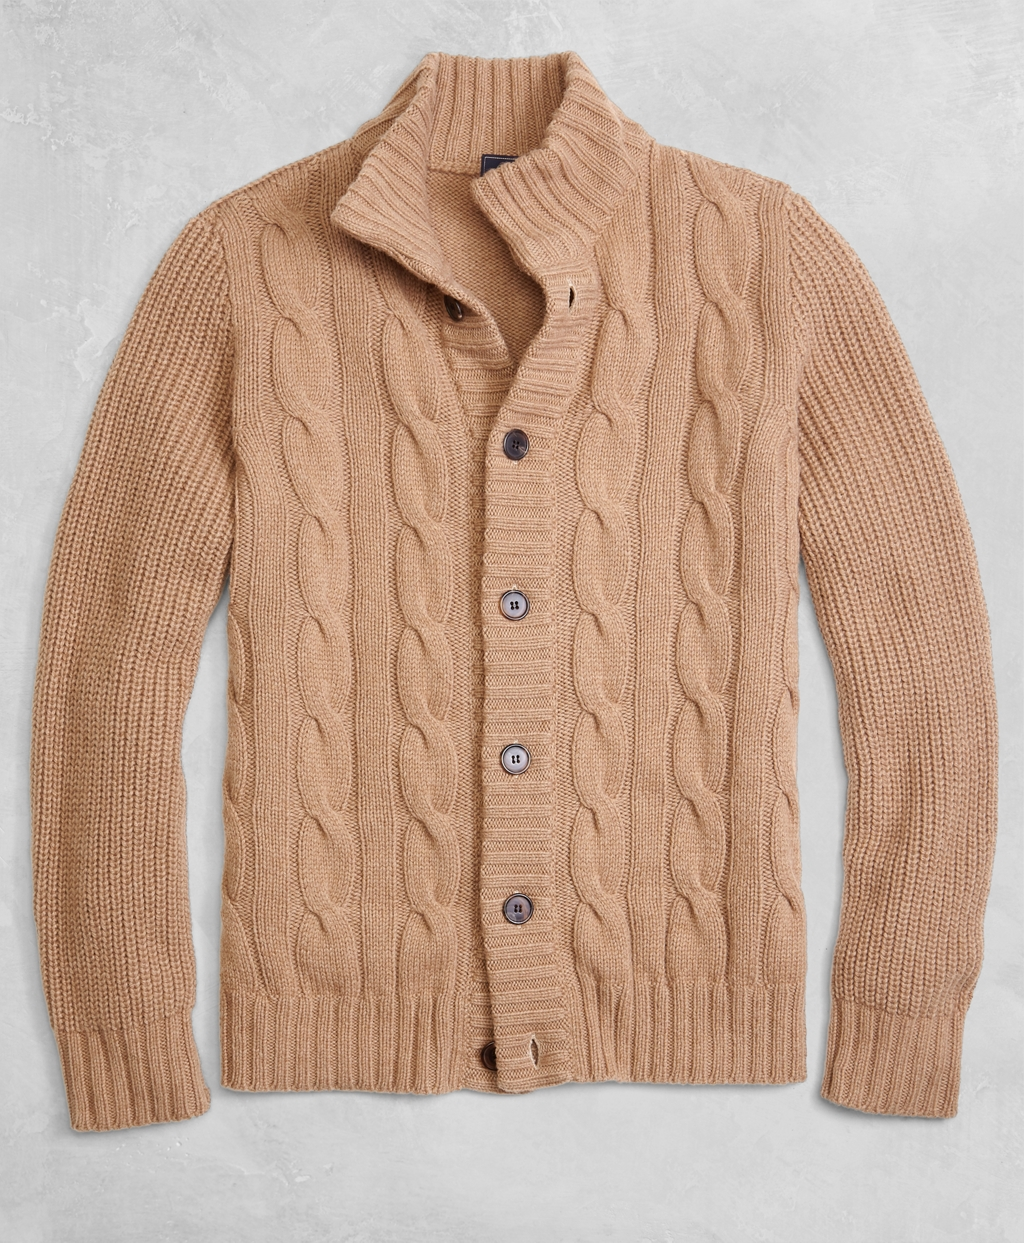 Men's Vintage Style Sweaters – 1920s to 1960s Brooks Brothers Mens Golden Fleece 3-D Knit Camel Hair Cardigan $798.00 AT vintagedancer.com